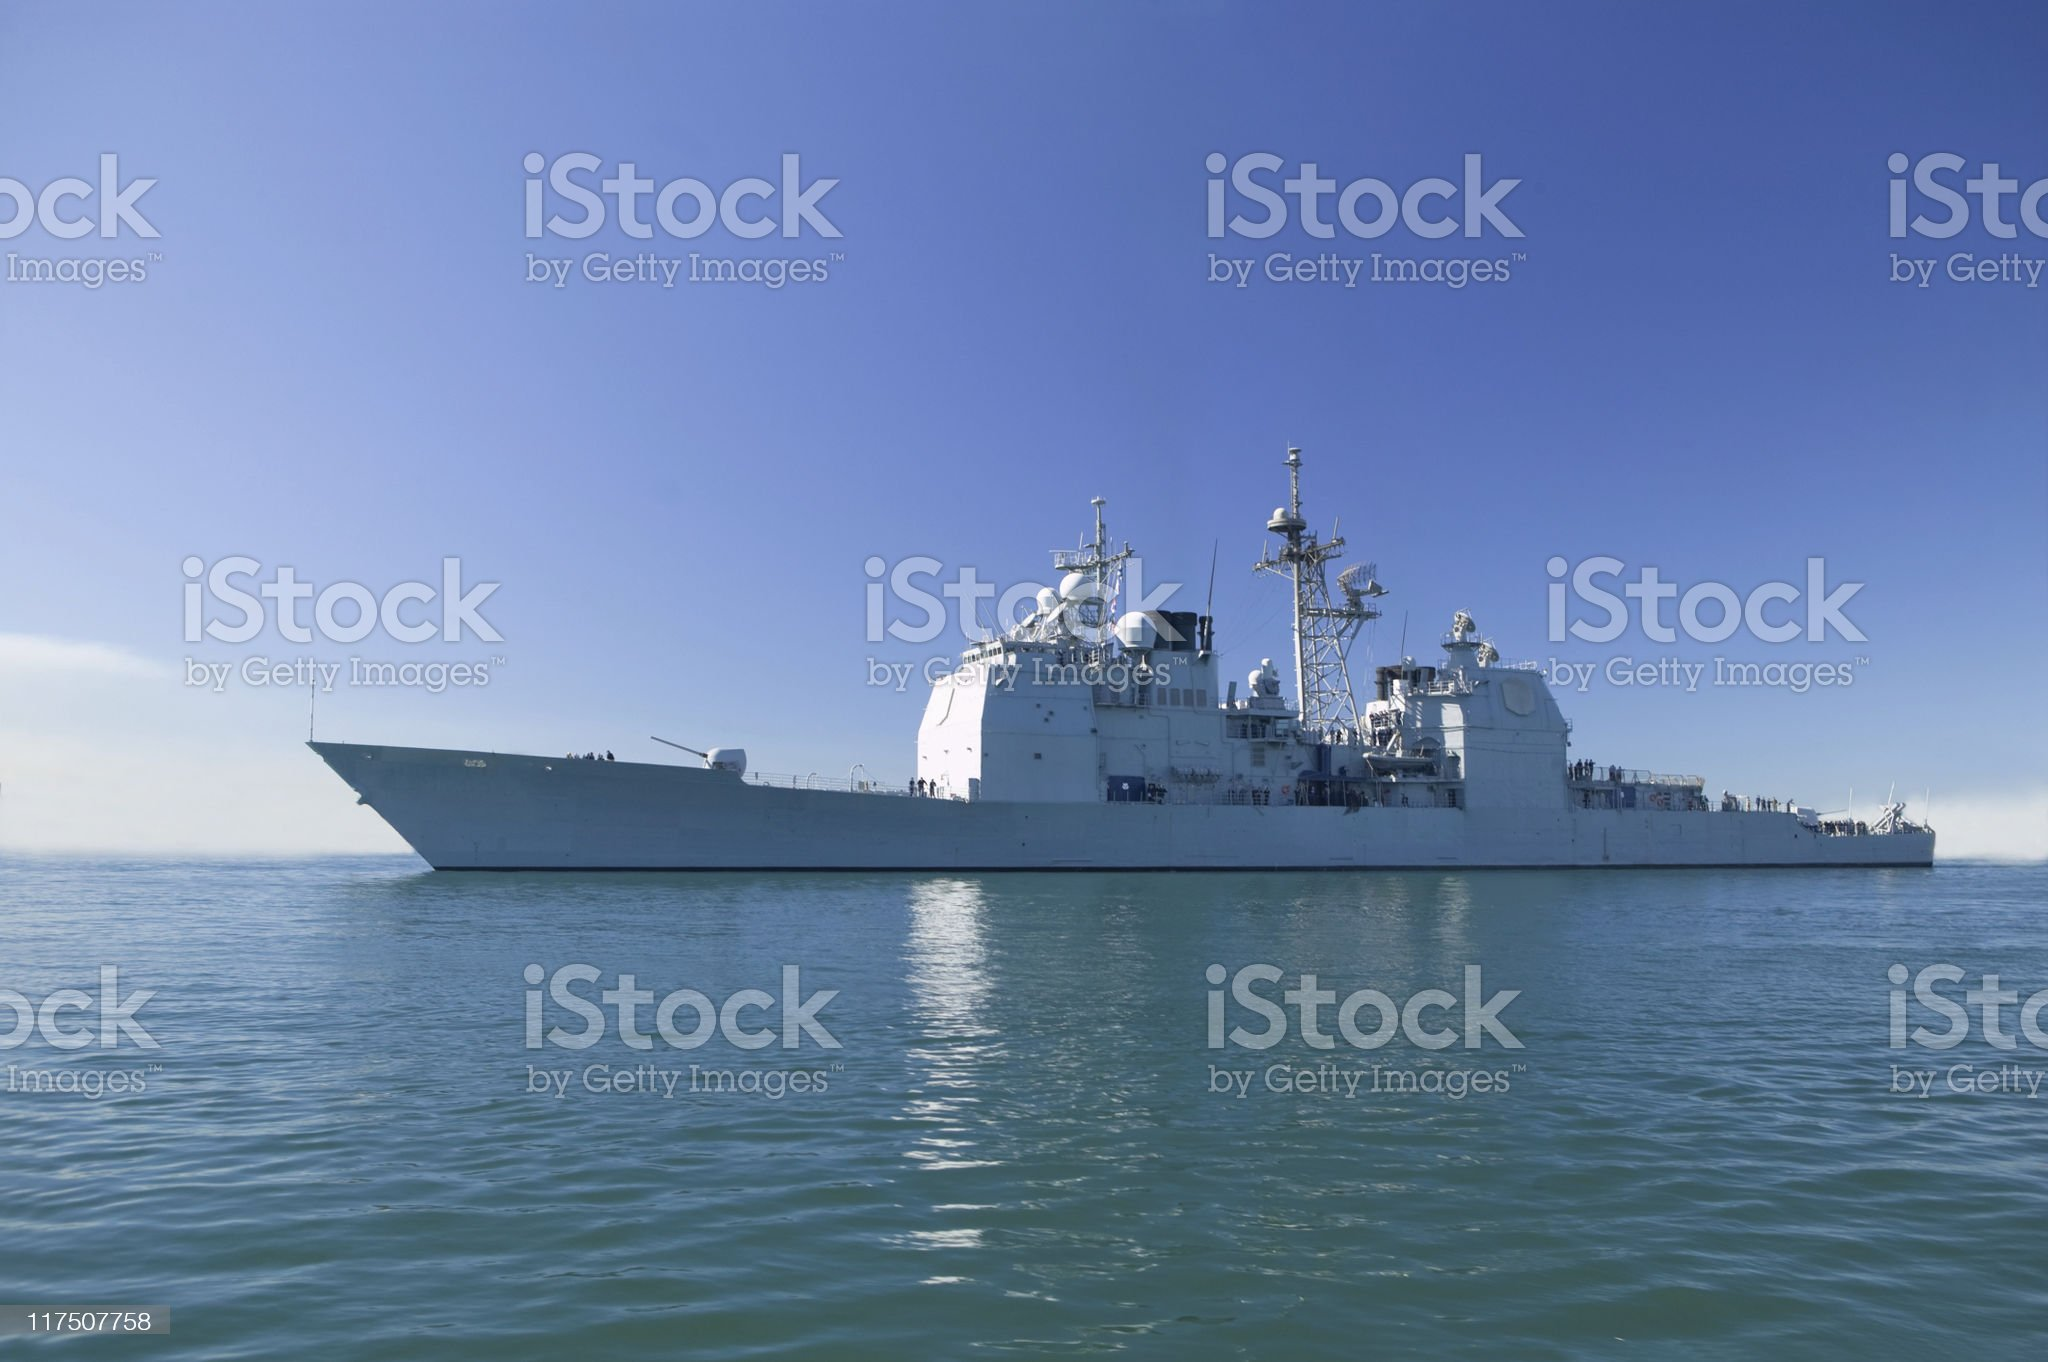 Ticonderoga class cruiser at sea on a clear sunny day royalty-free stock photo